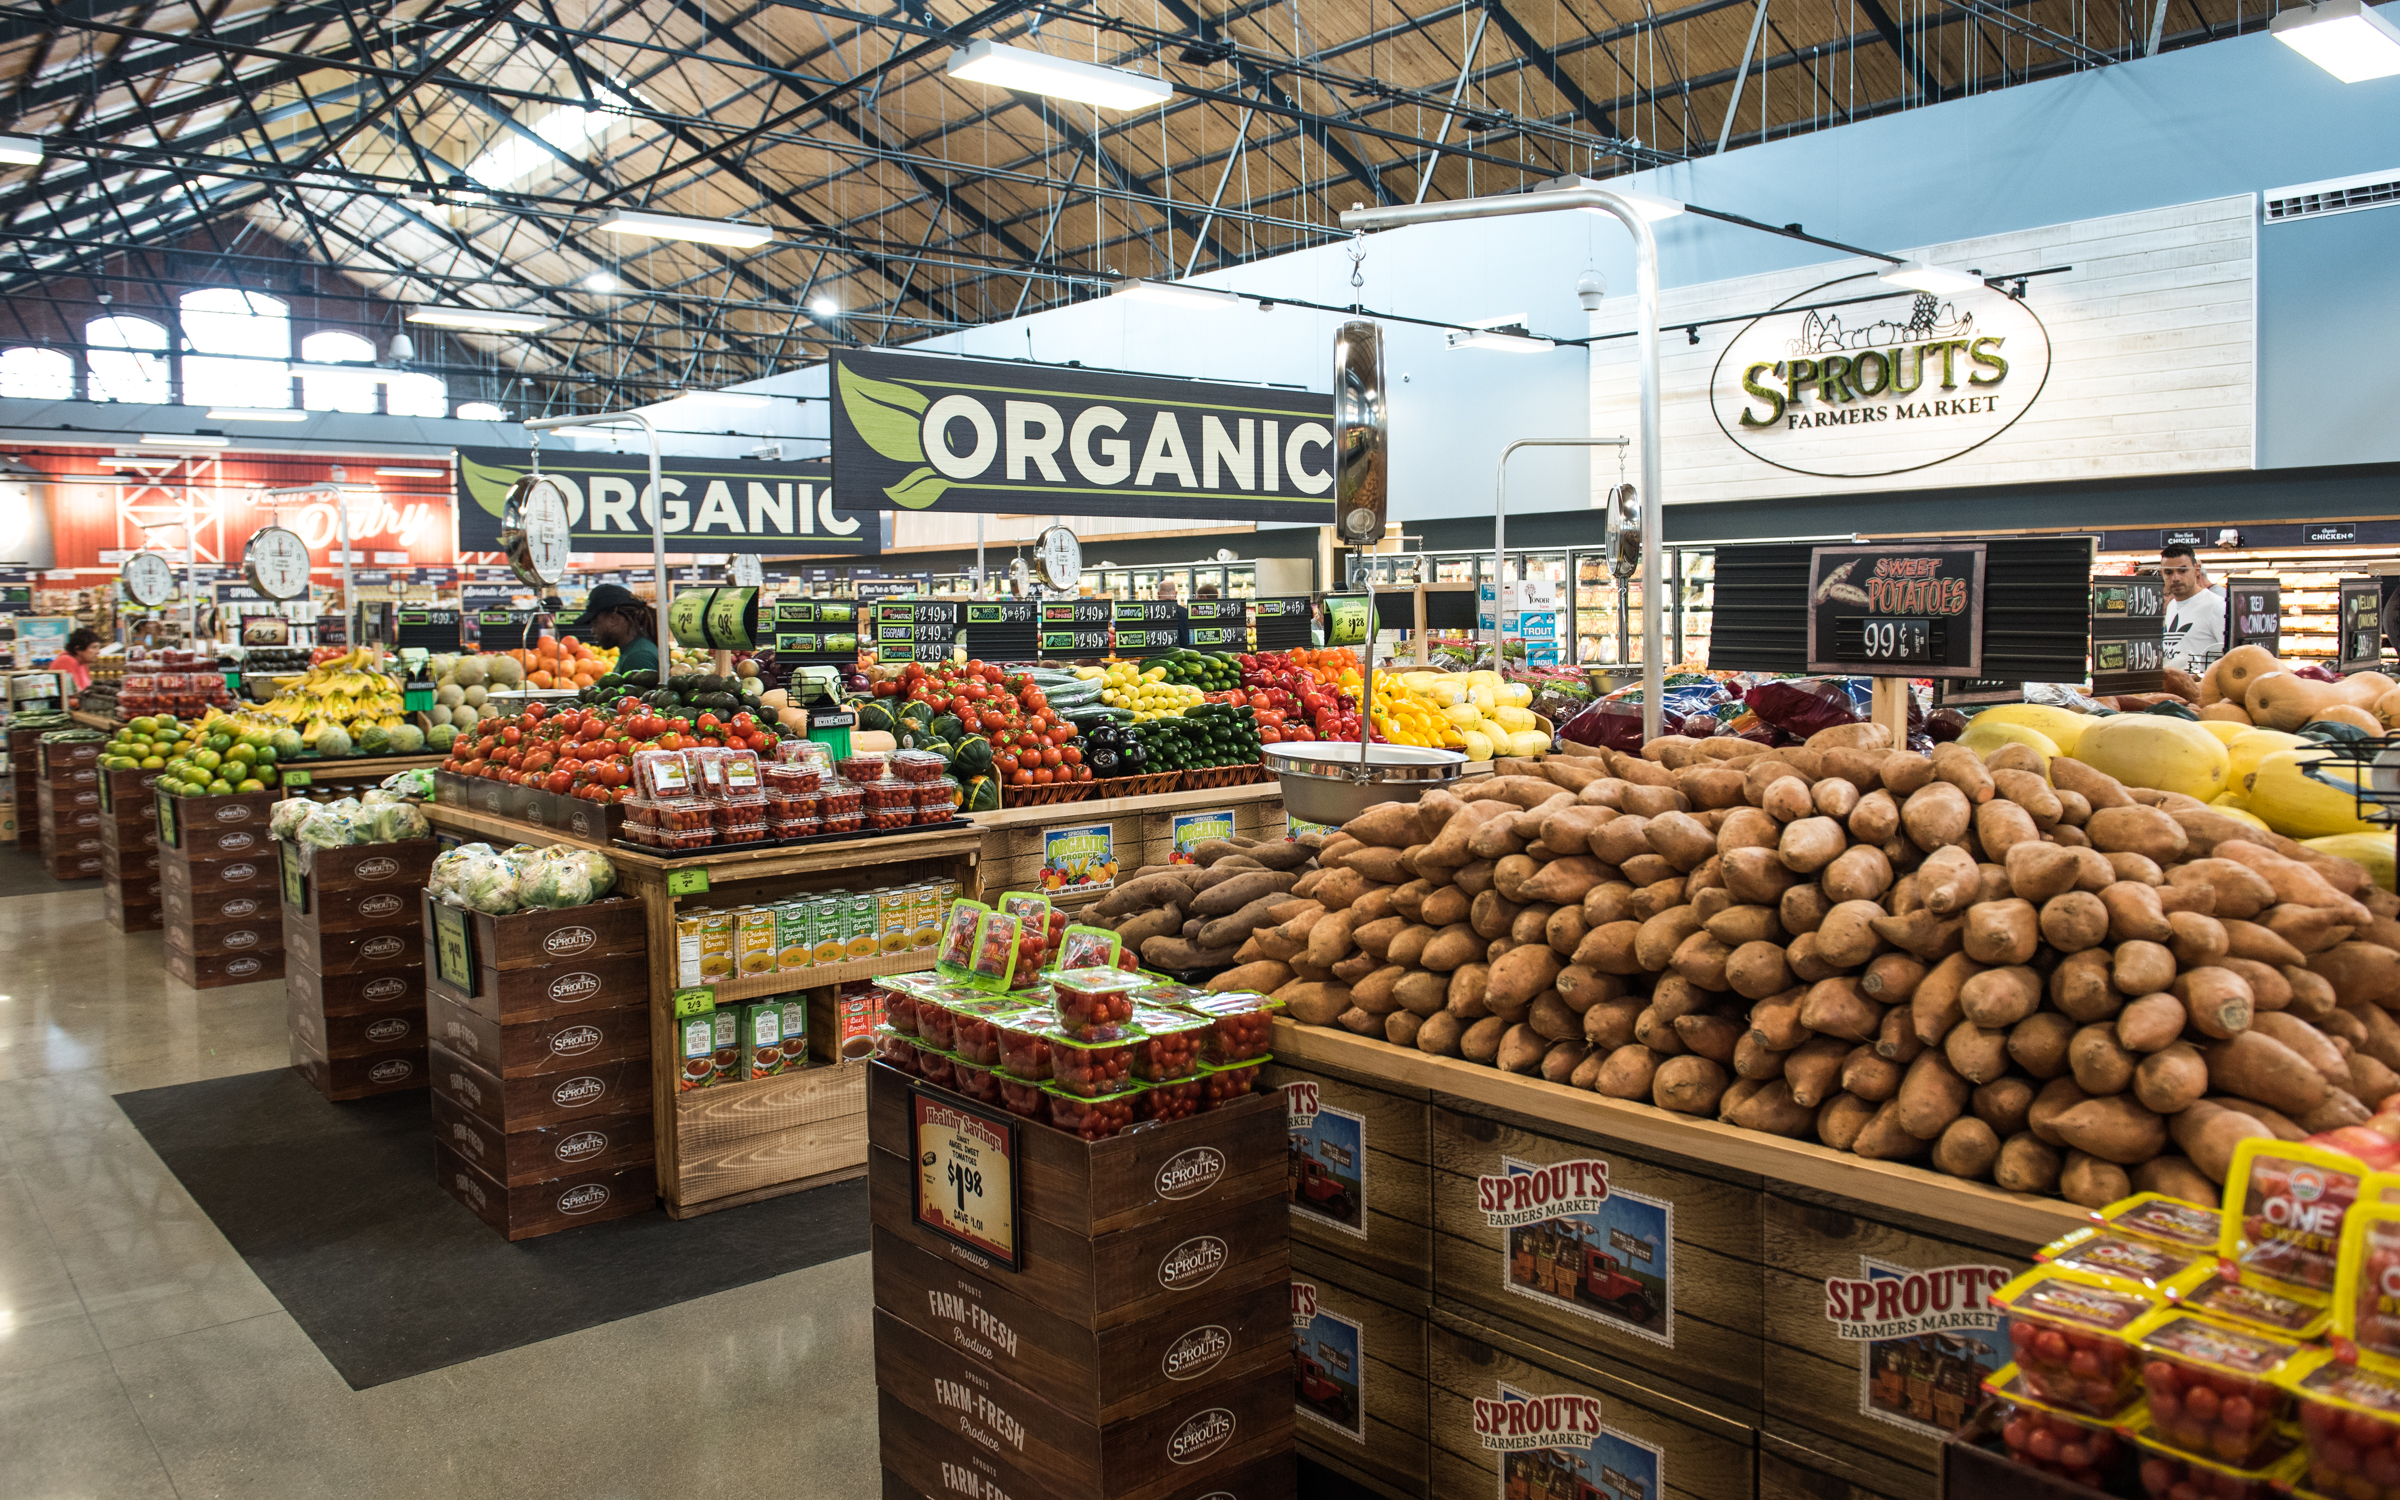 Sprouts´ places produce at the center of every store. In Philadelphia, find a wide selection of affordable fruits and veggies, alongside tons of organic options.